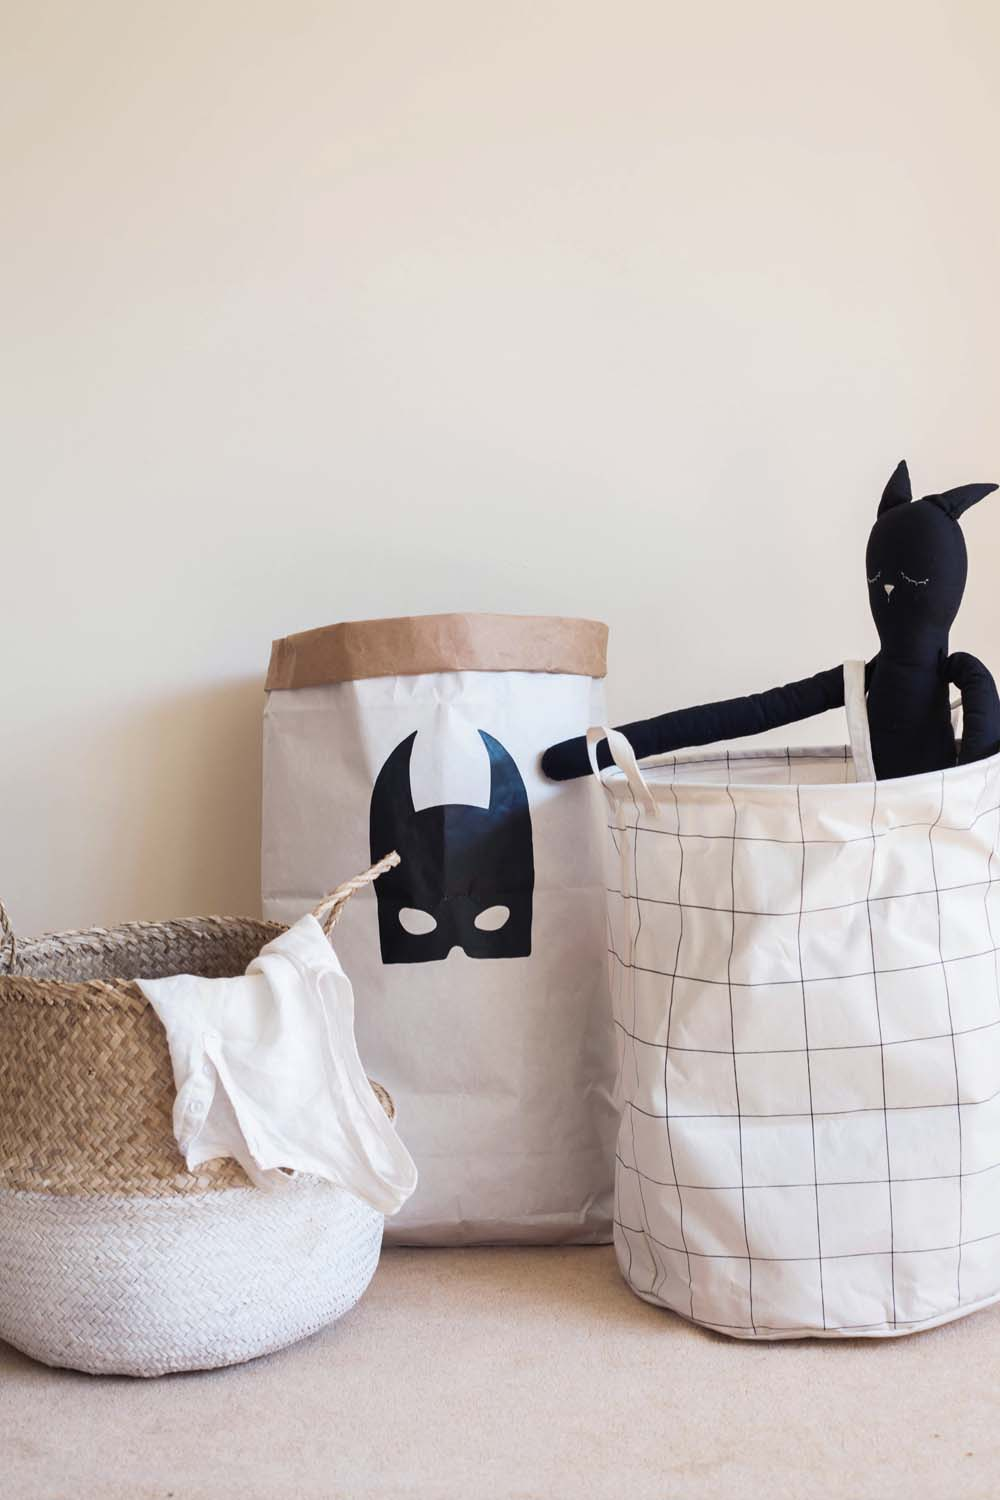 White Dipped Belly Basket by Oliella, Bat Mask storage bag by Hello Henry and Squares Storage Bag by Southward Stores.